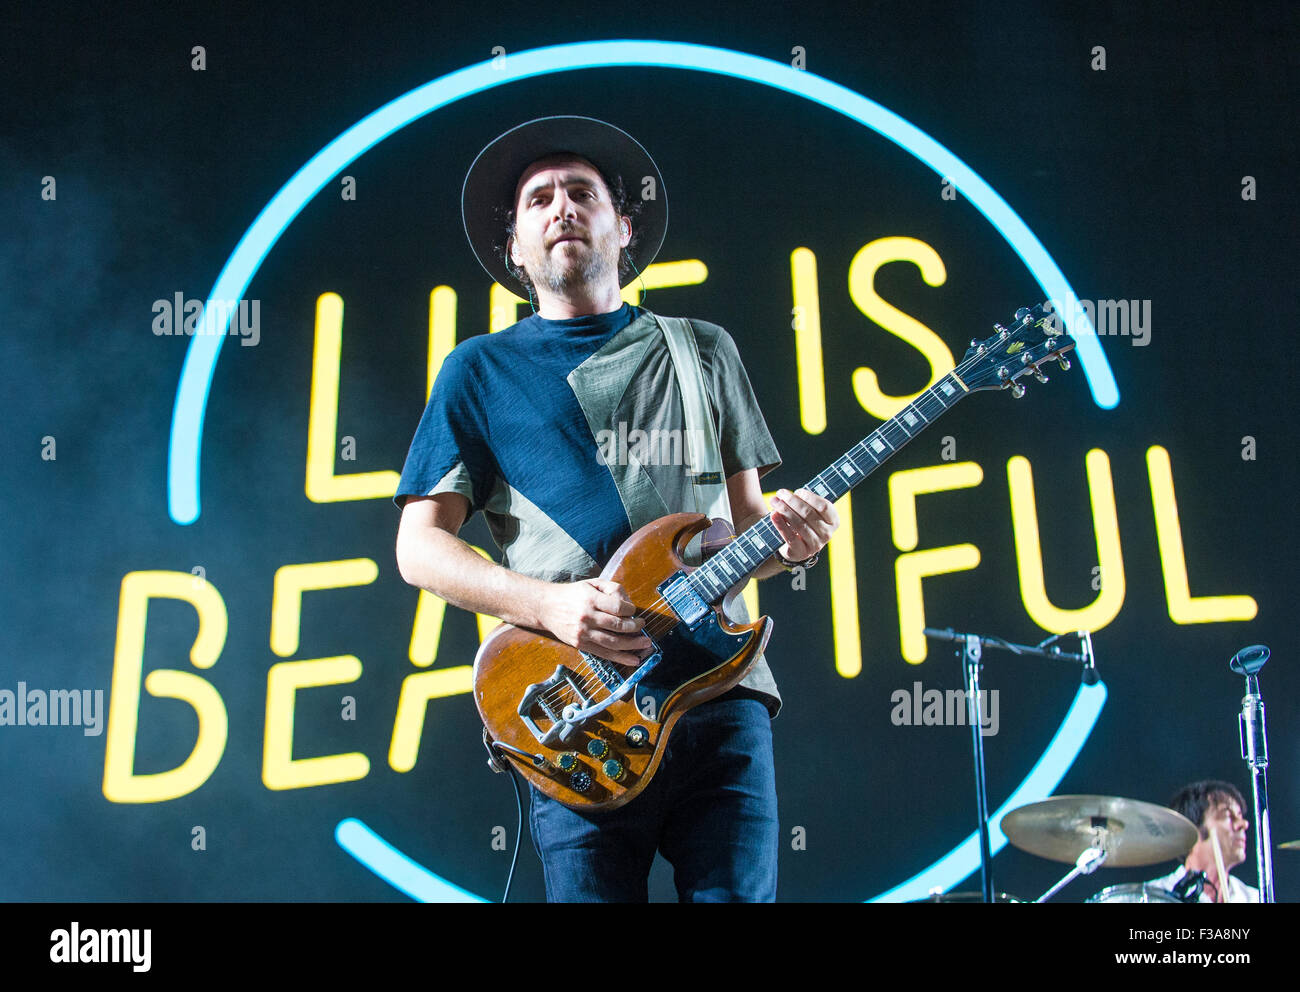 Musician James Shaw of Metric performs onstage at the 2015 Life Is Beautiful Festival in Las Vegas Stock Photo